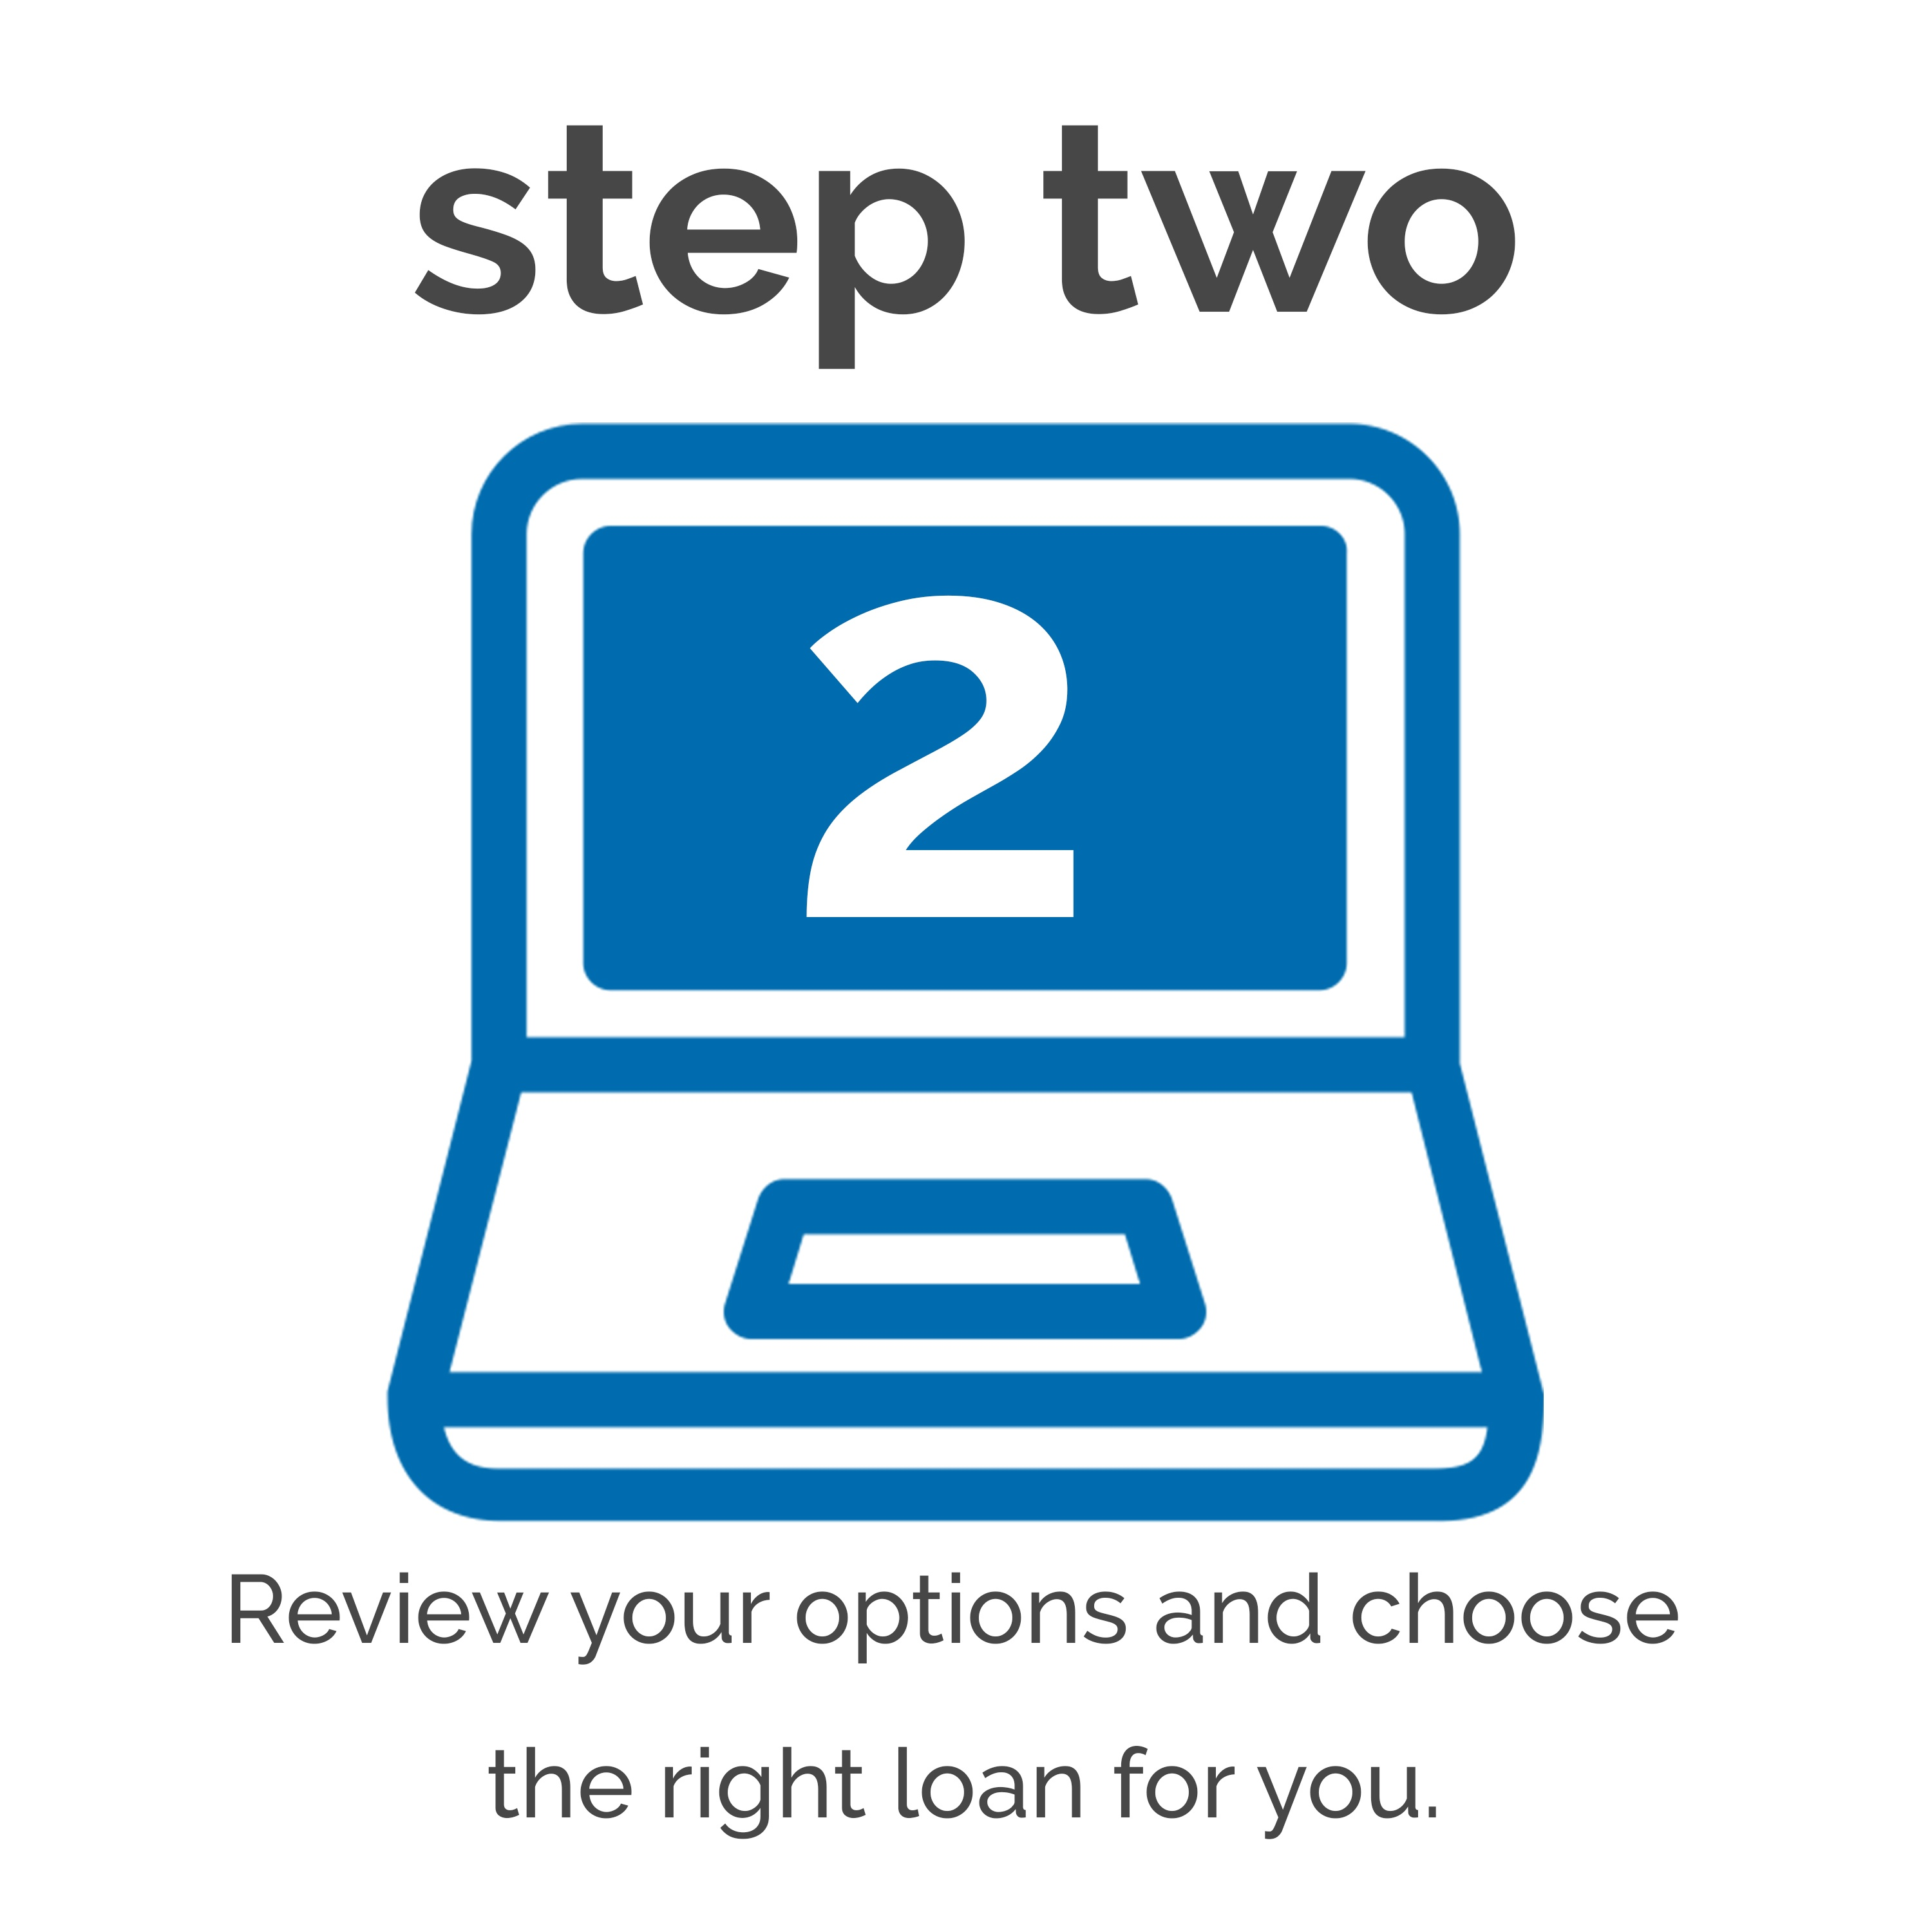 Step two- Review your options and choose the right loan for you